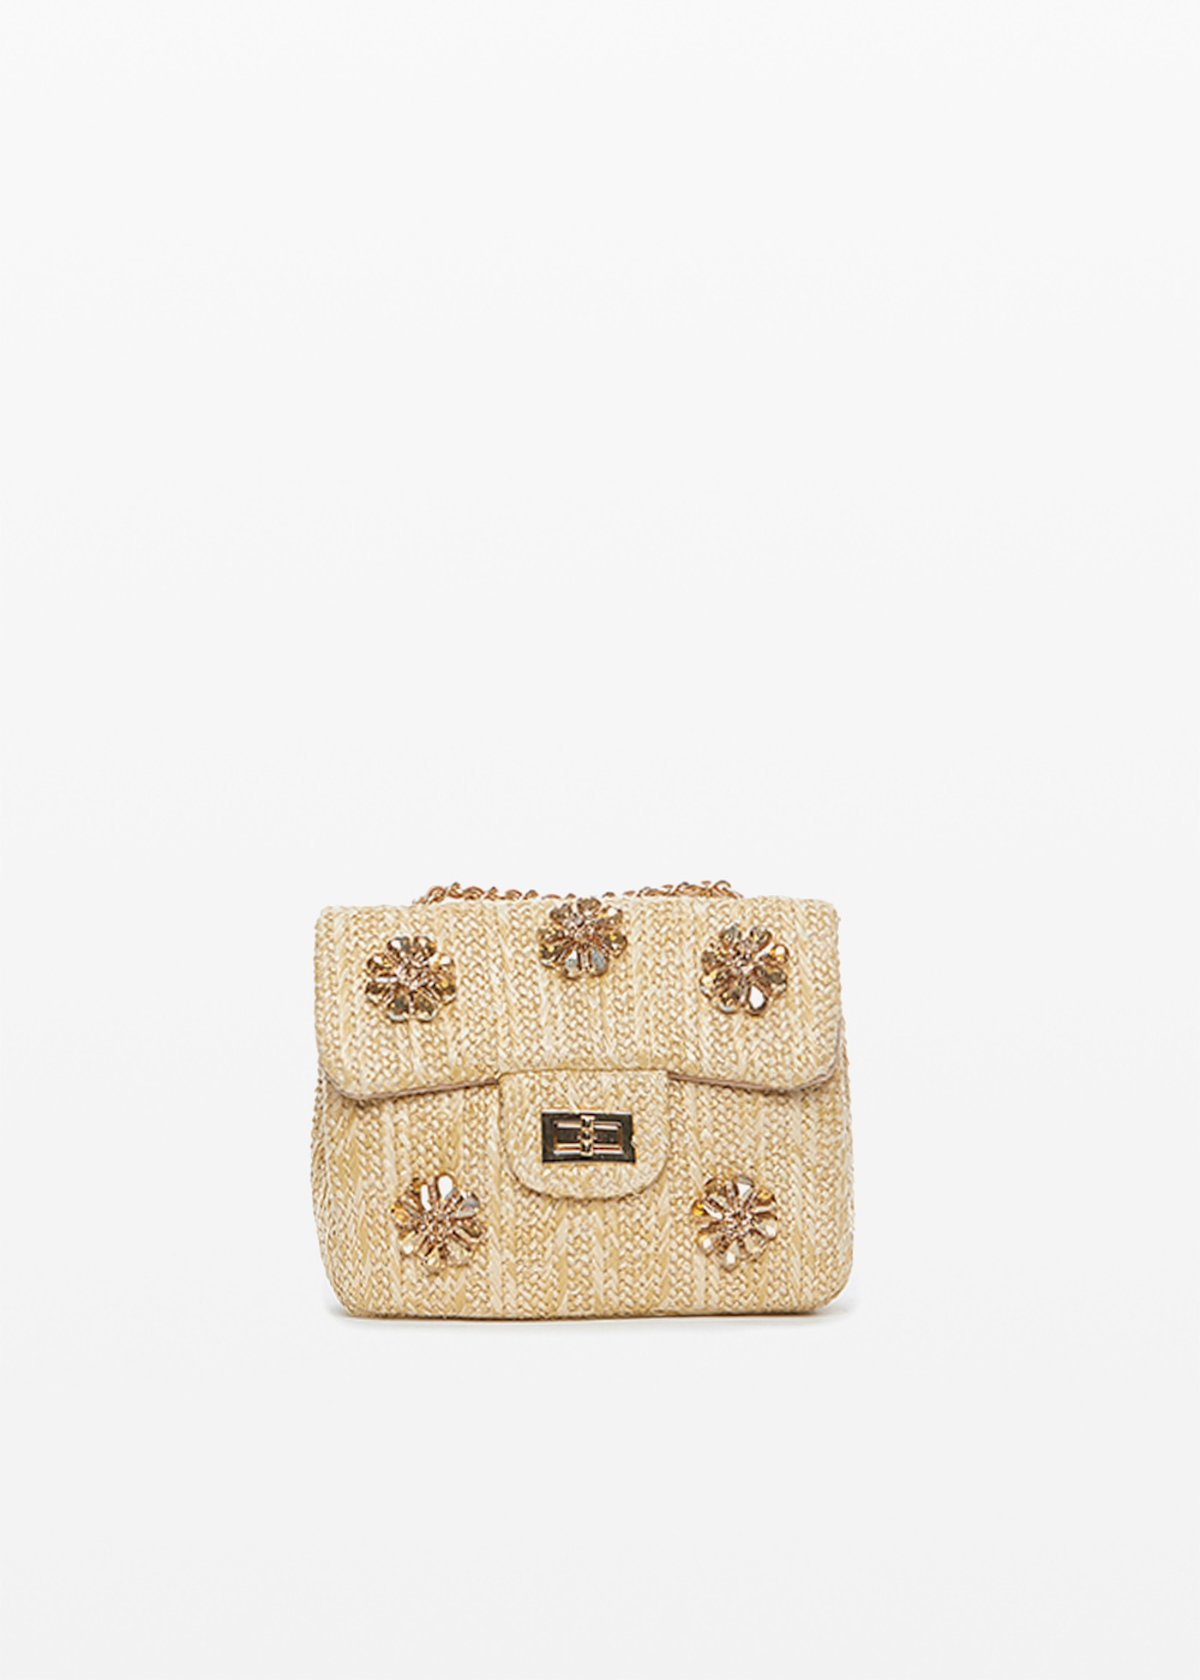 Byss Clutch bag with flowers applications